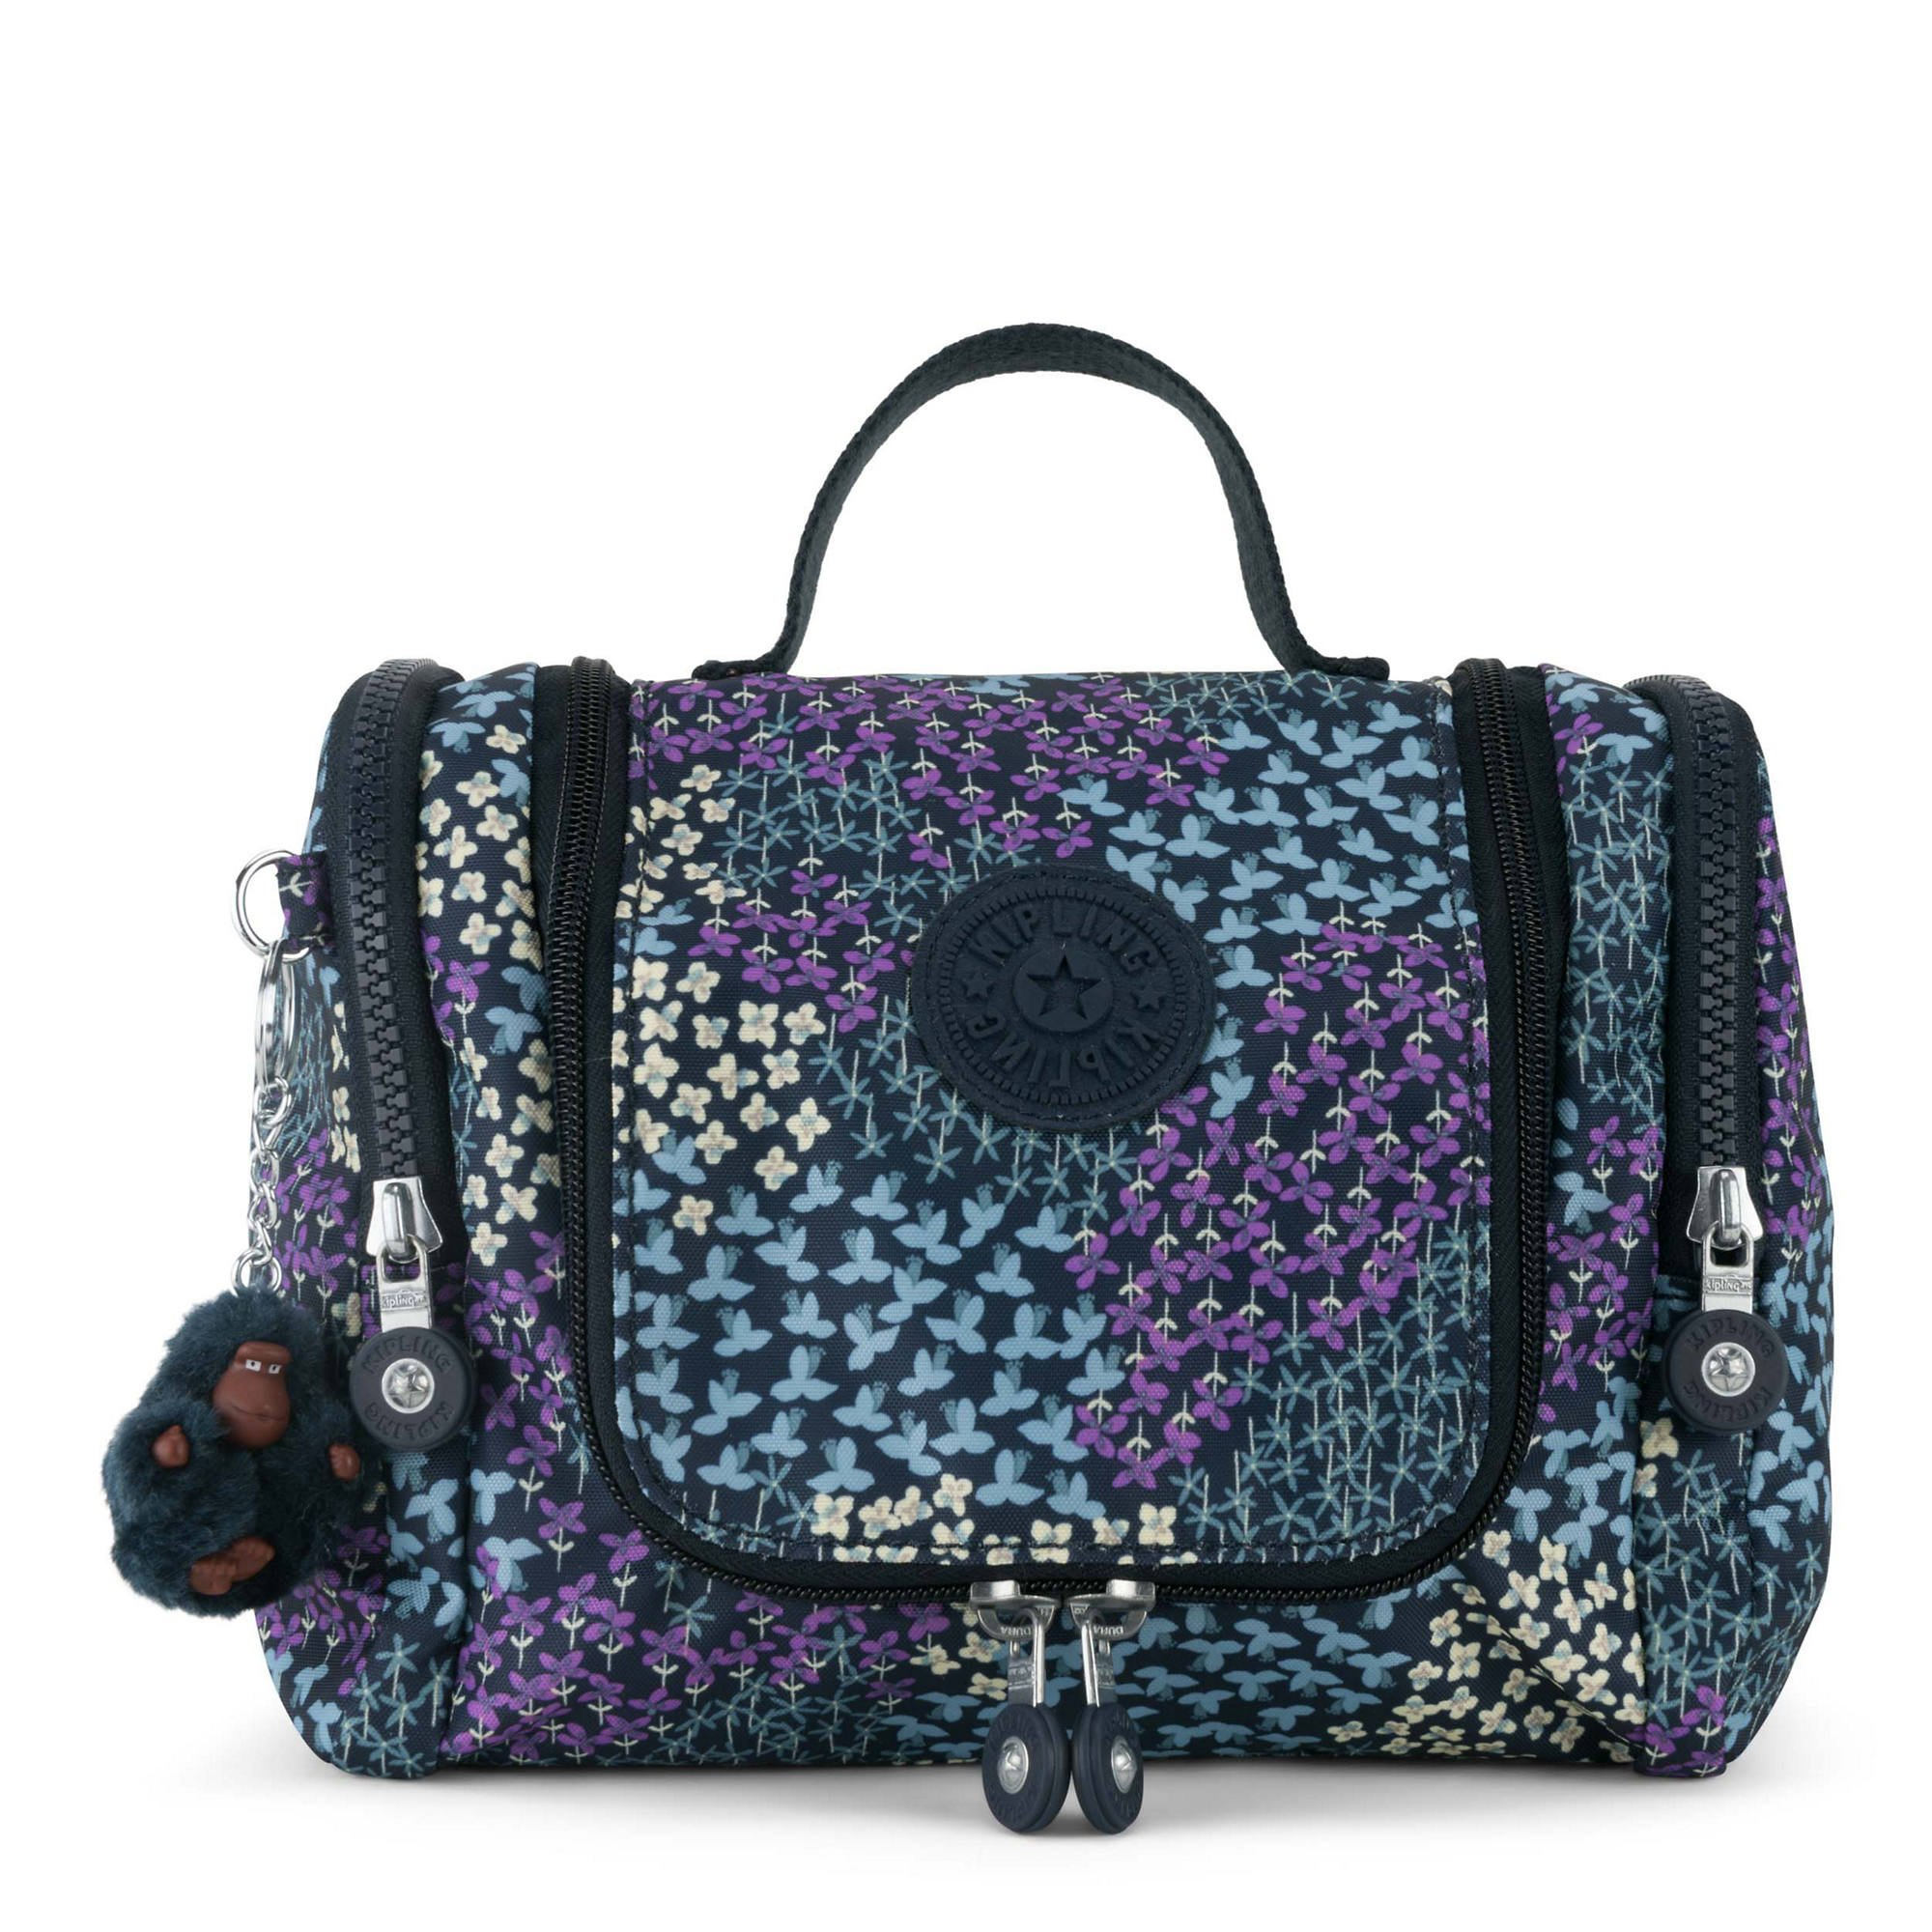 Kipling Connie Printed Hanging Toiletry Bag, Dotted Bouquet